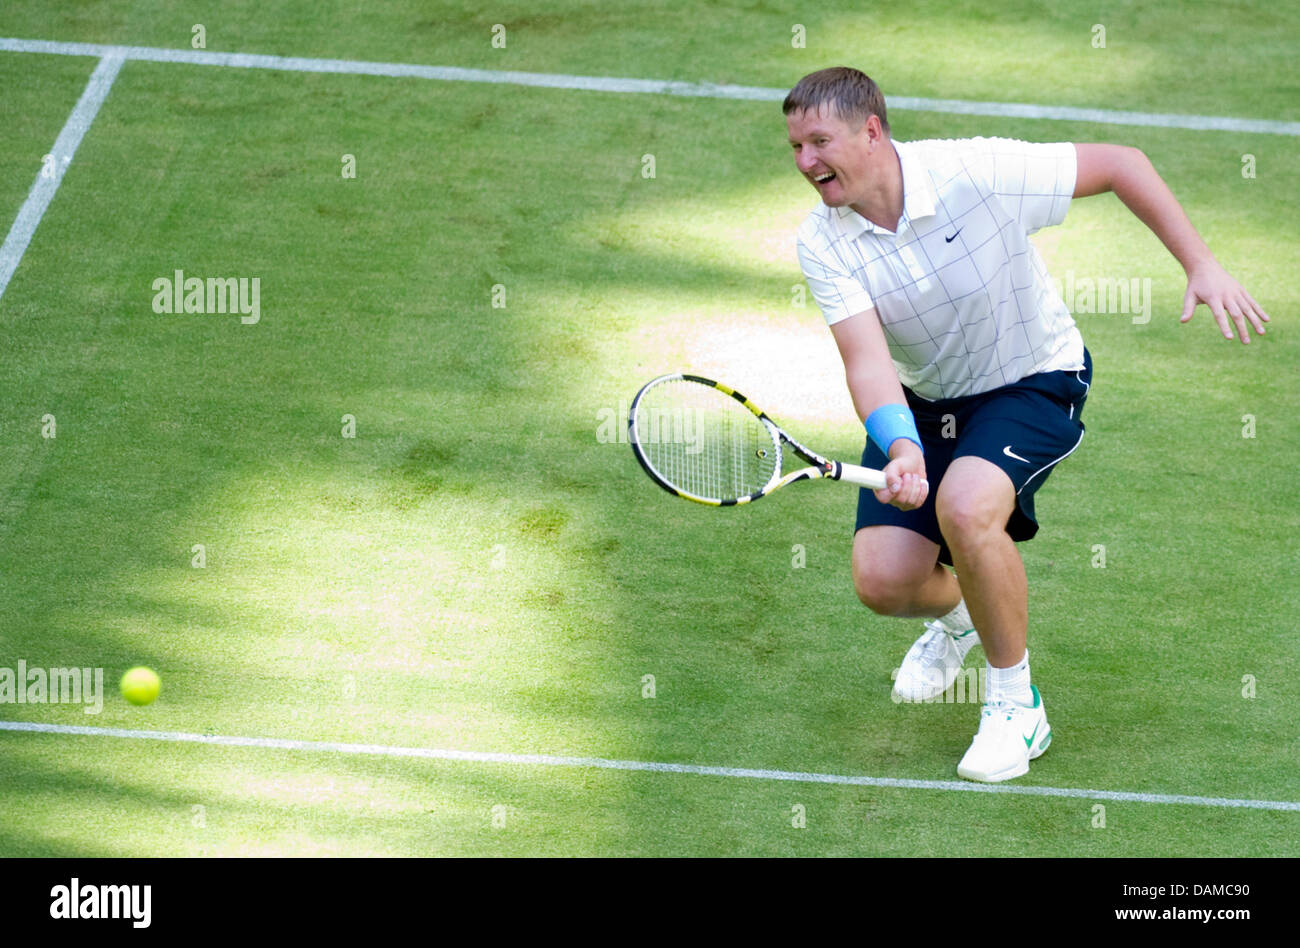 Former world class tennis player Yevgeny Kafelnikov from Russia is